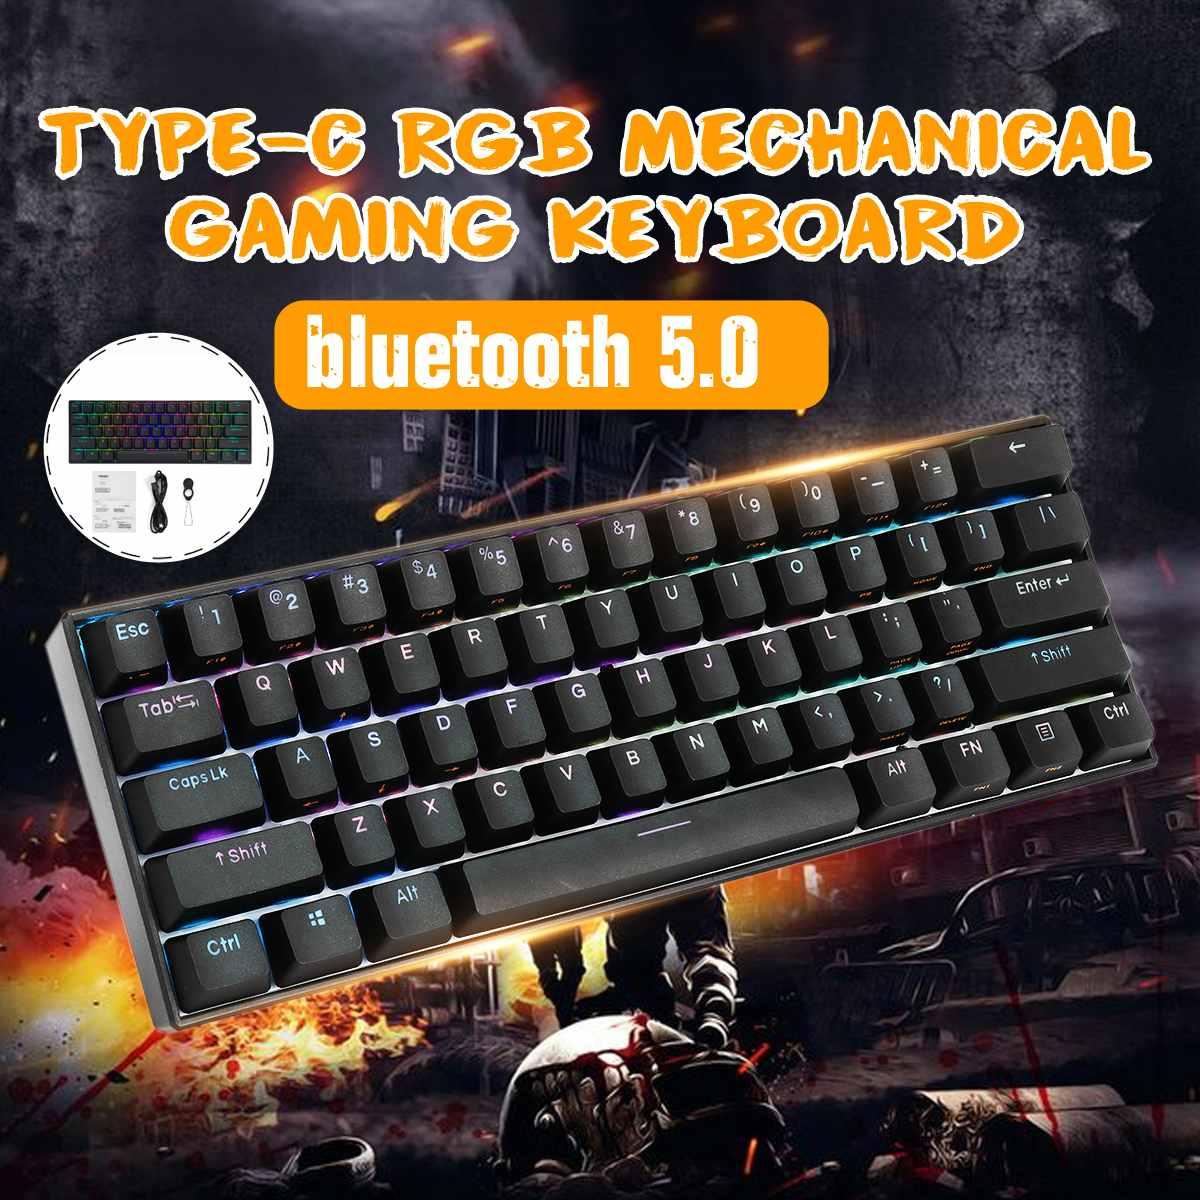 <font><b>60</b></font>% NKRO bluetooth 5.0 Type-C RGB PBT Double Shot <font><b>Keycap</b></font> 61 Keys Mechanical Gaming <font><b>Keyboard</b></font> Black image